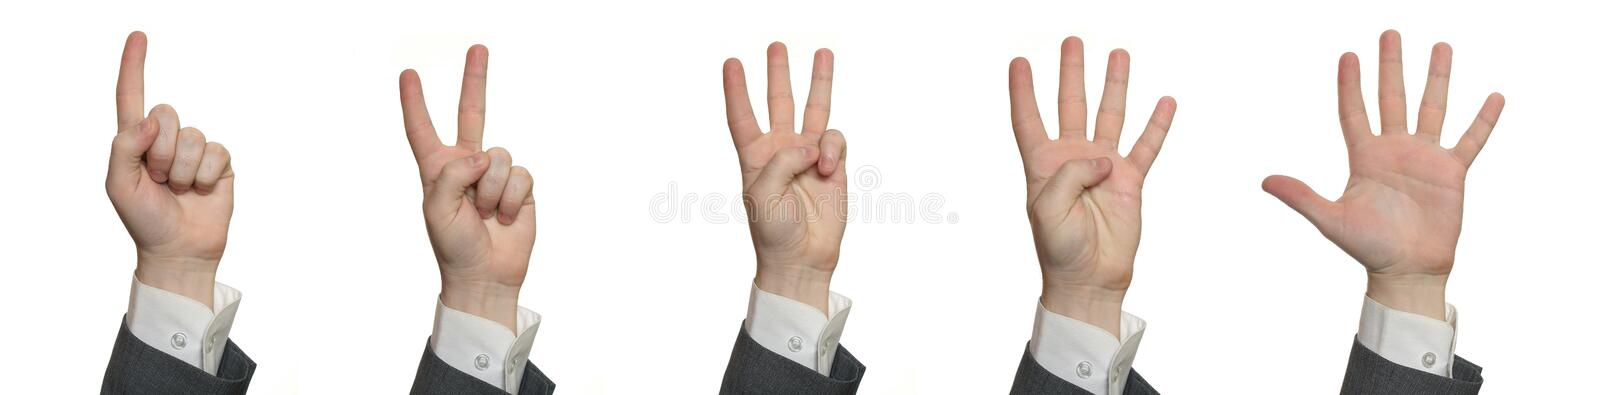 Download Hands, counting 1 to 5 stock image. Image of concepts - 4589249